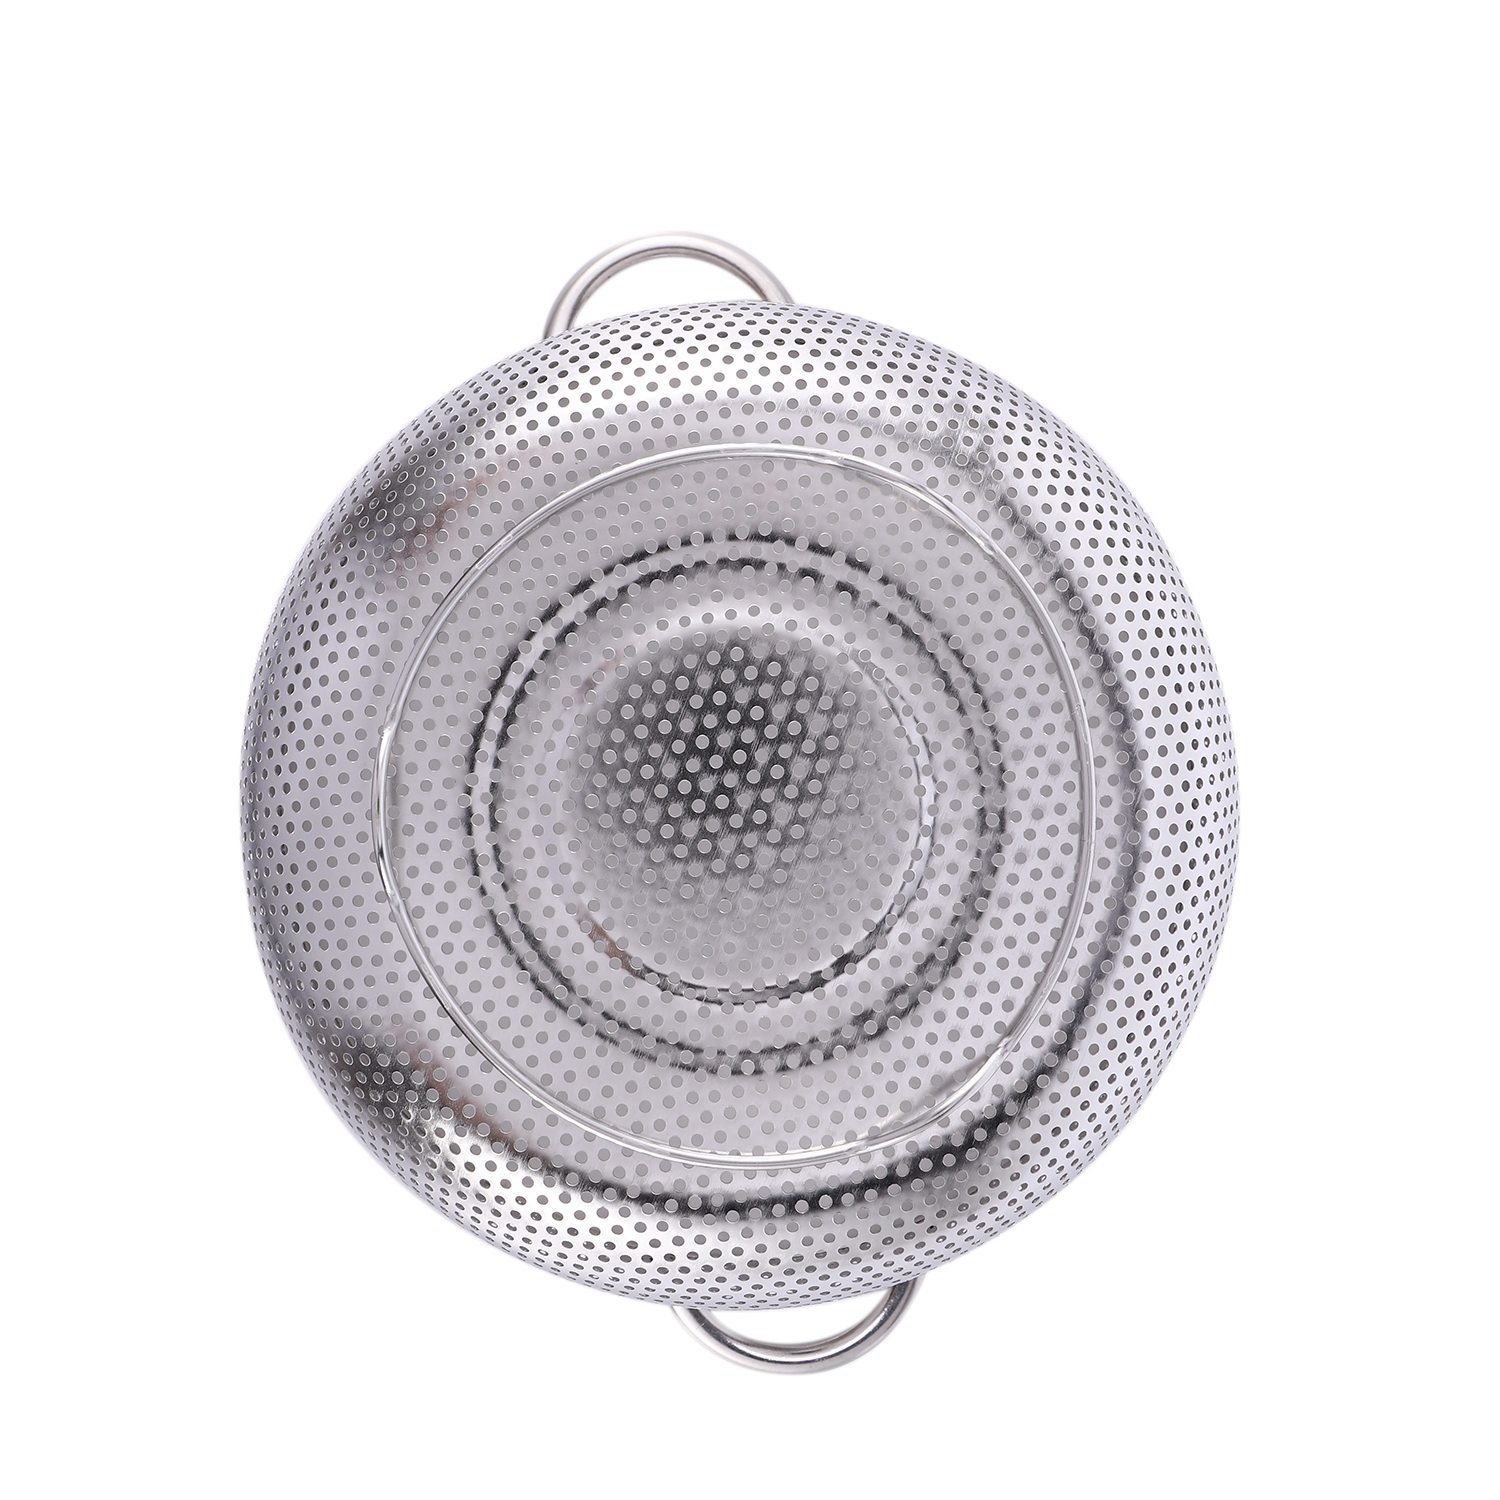 thumbnail 3 - Stainless Steel Colanders With Handle,Colander Perforated Strainer For Kitc D1Z4